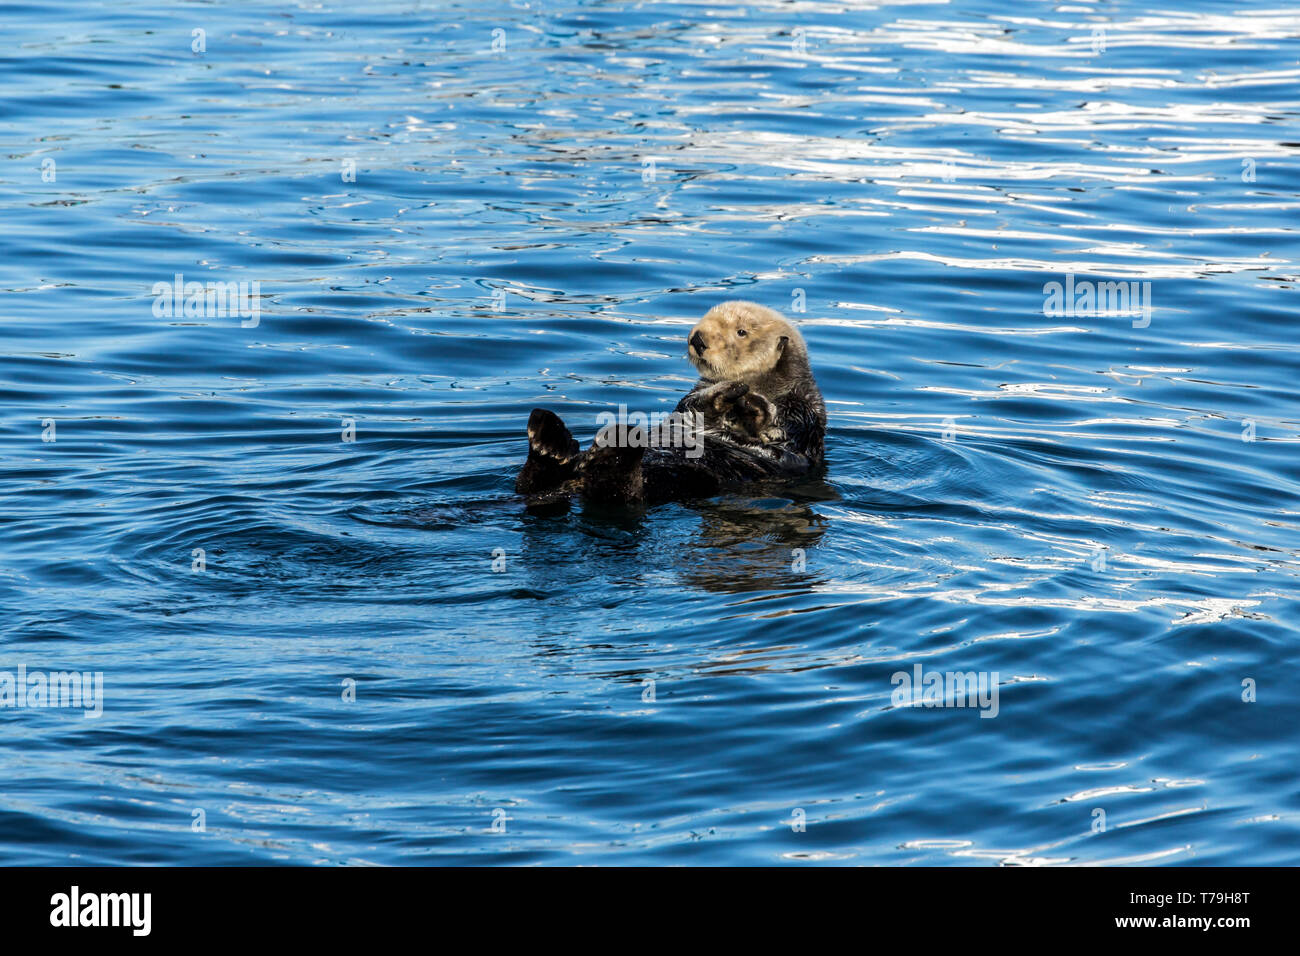 Sea Otter (Enhydra lutris) entangling itself to strings to prevent itself from drifting away, Monterey Bay, California - Stock Image